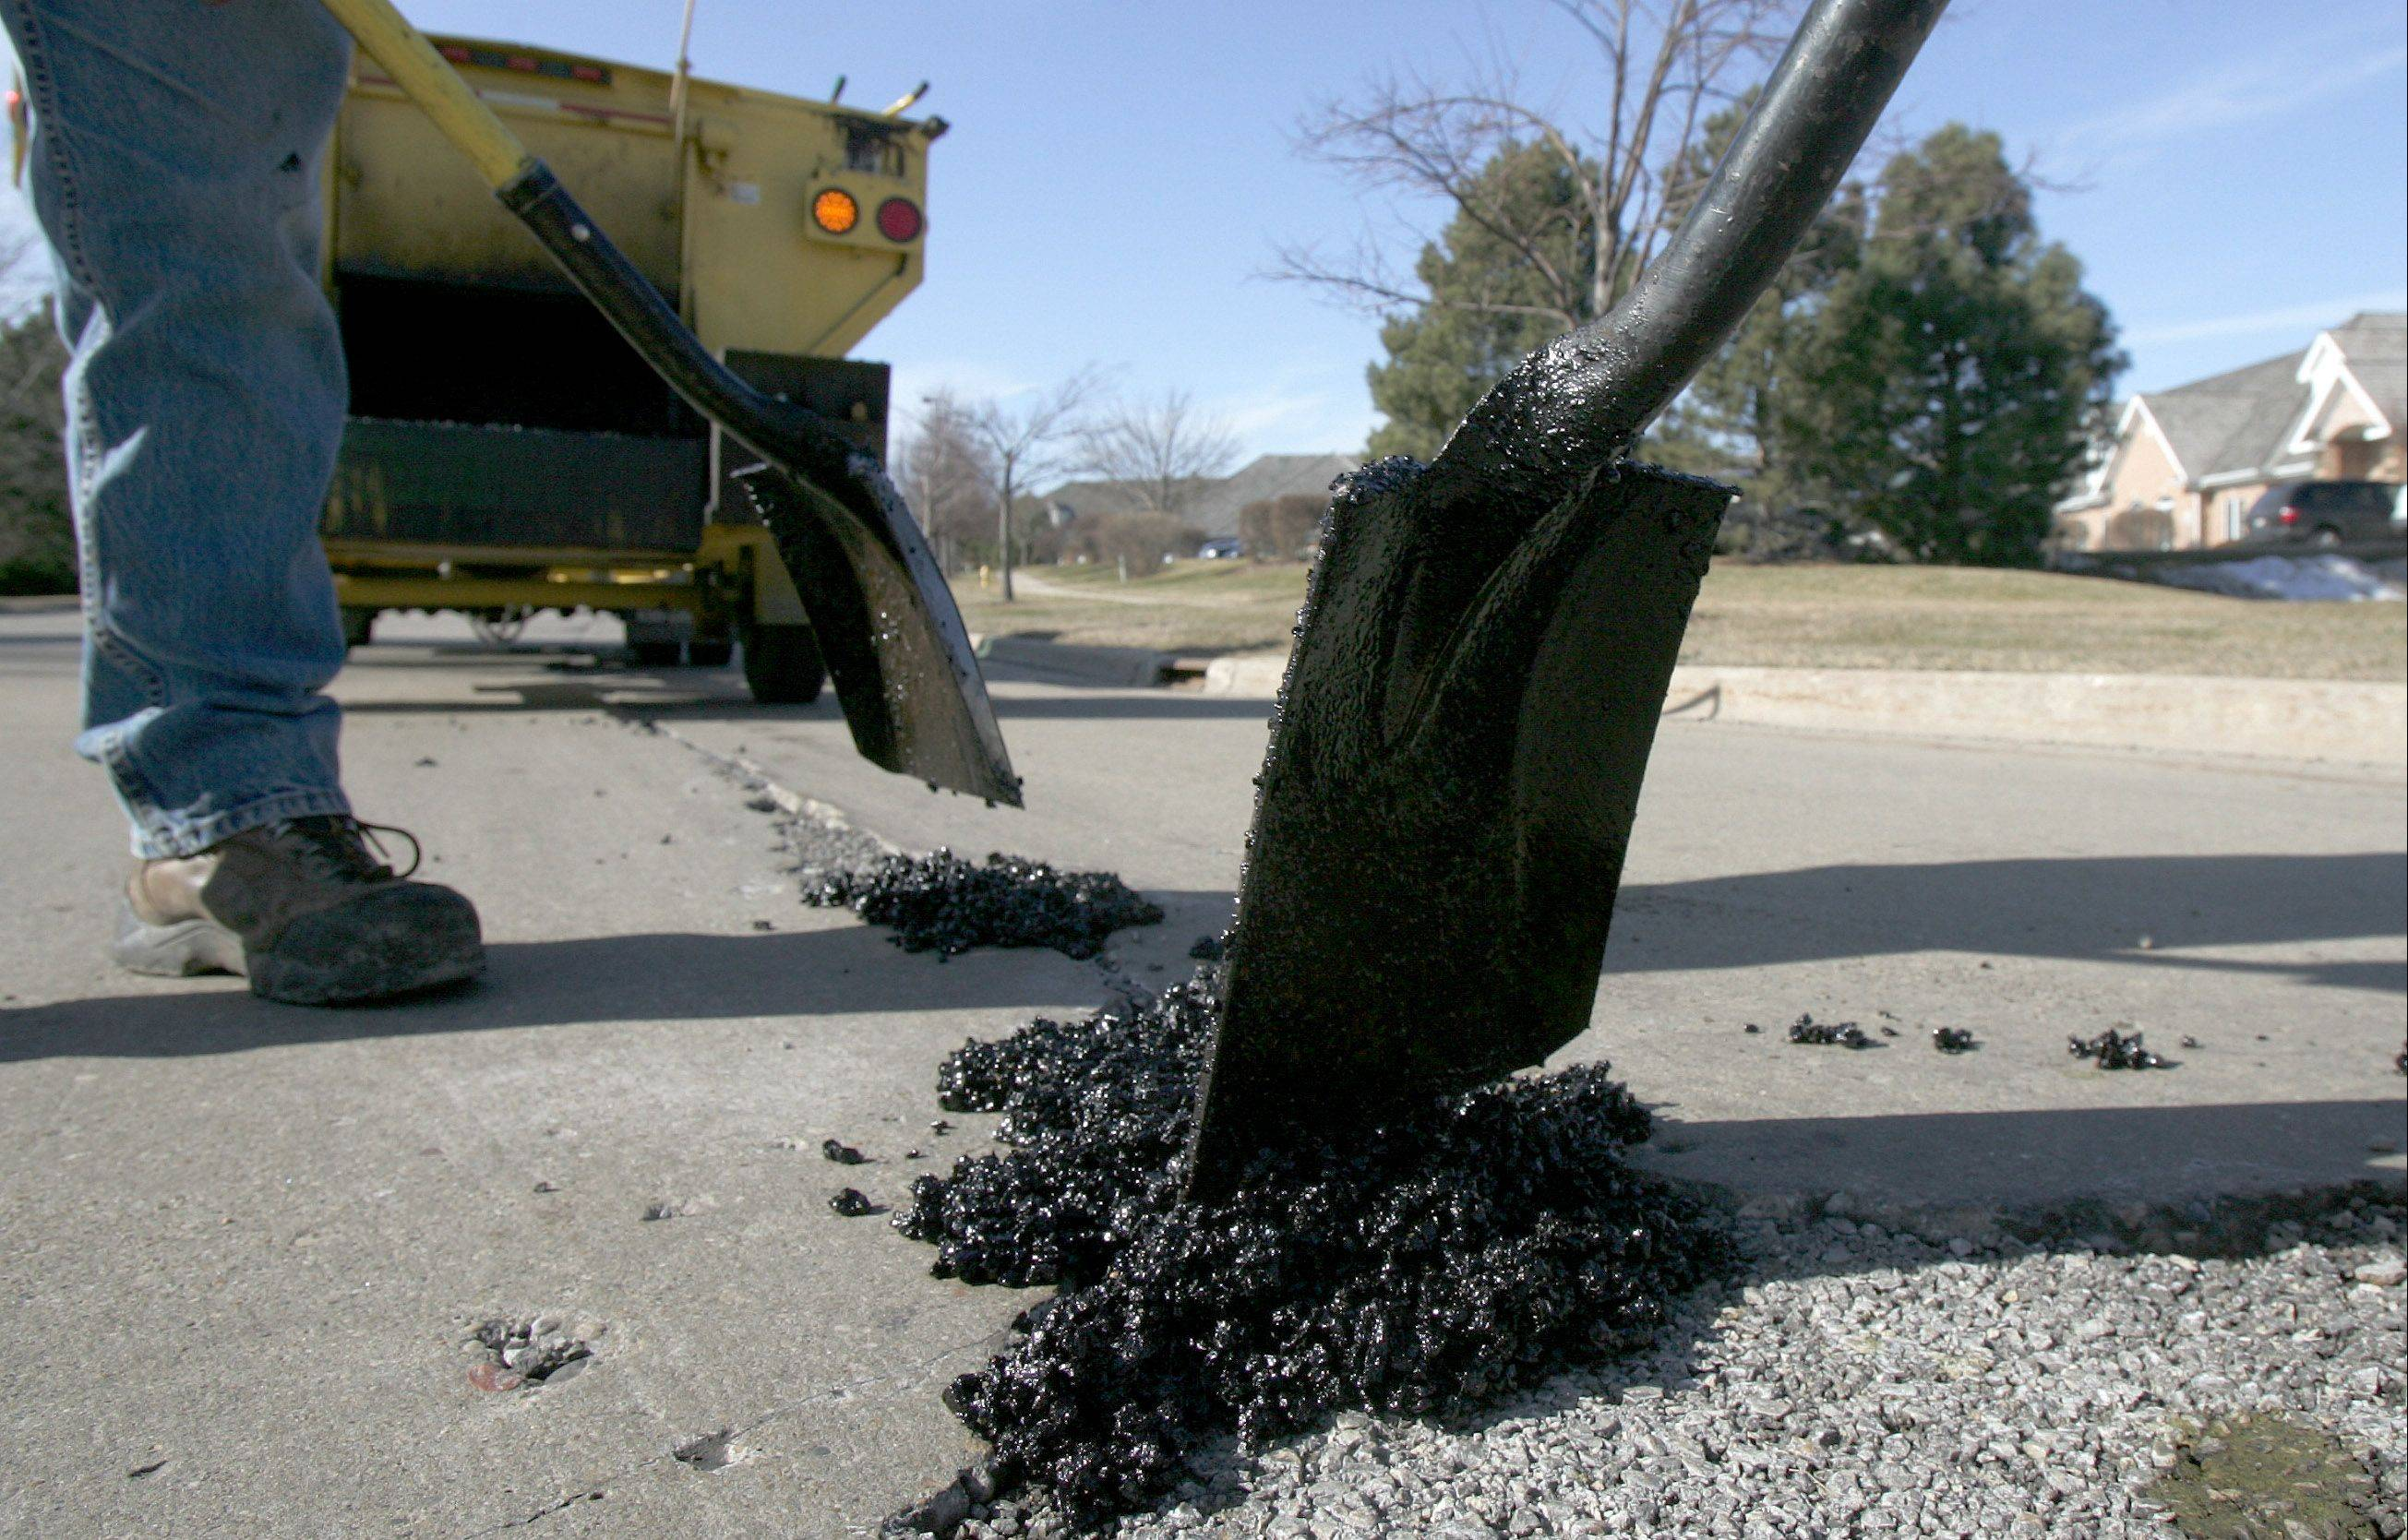 Libertyville voters on Tuesday approved a property tax increase to allow th village to borrow money to fix roads.